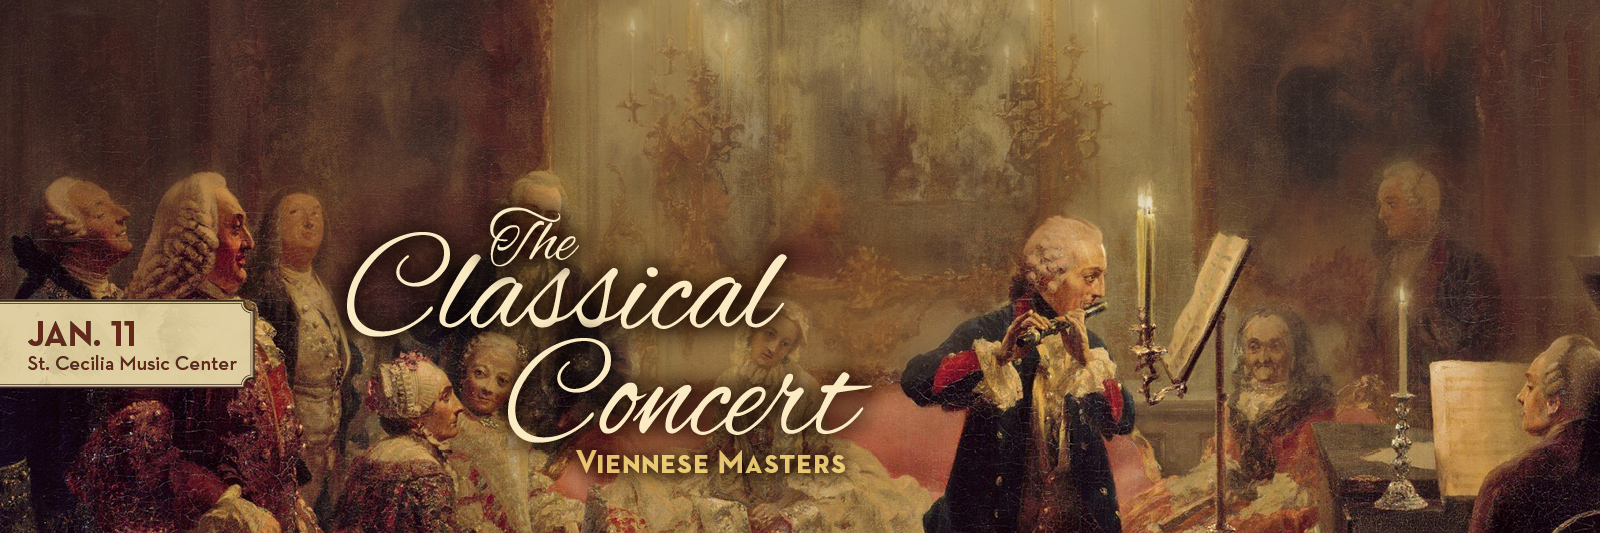 Viennese Masters